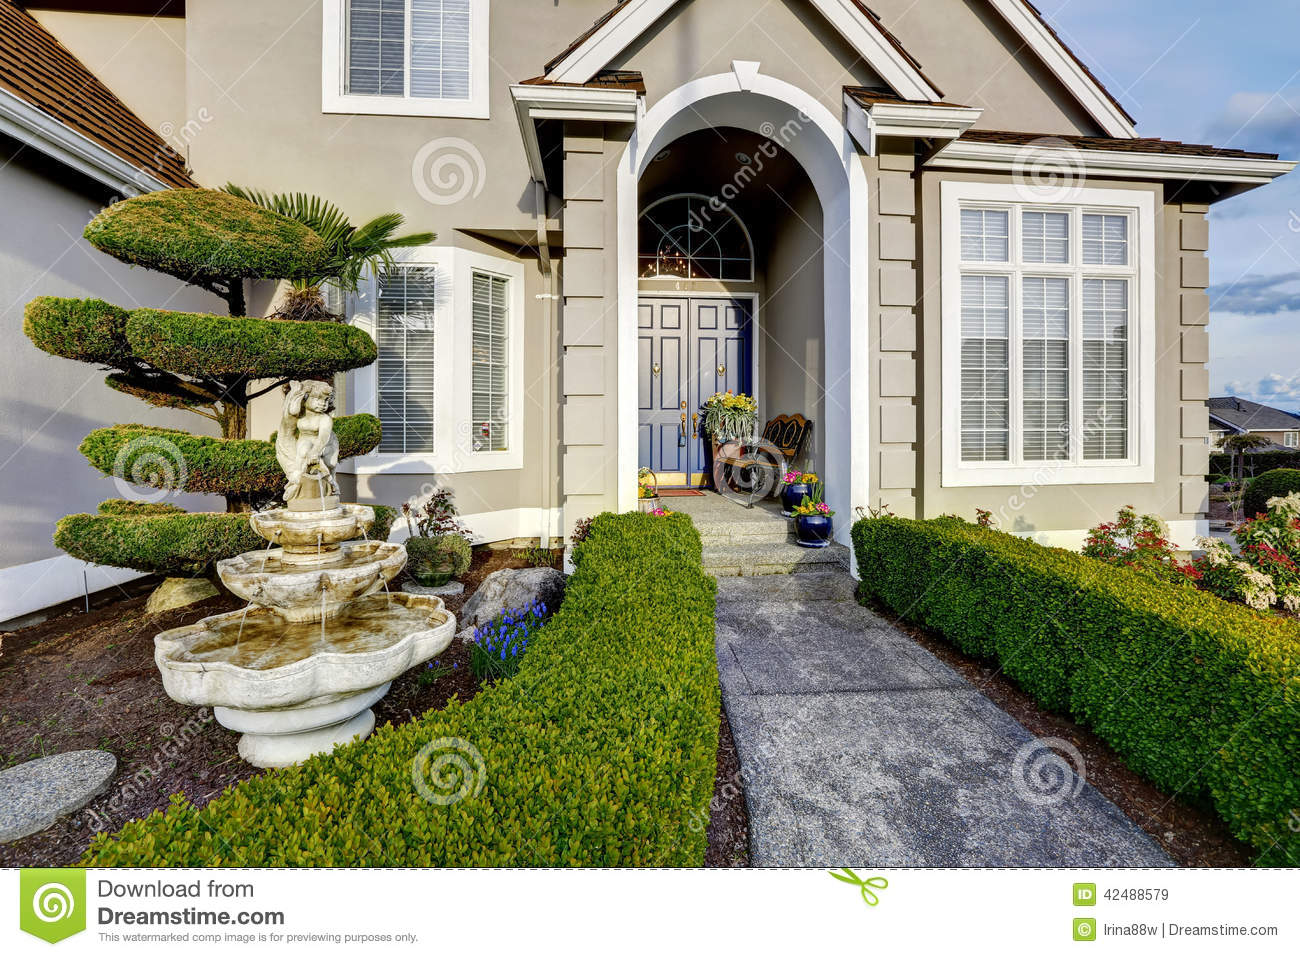 luxury house exterior entrance porch view stock image image of style northwest 42488579. Black Bedroom Furniture Sets. Home Design Ideas